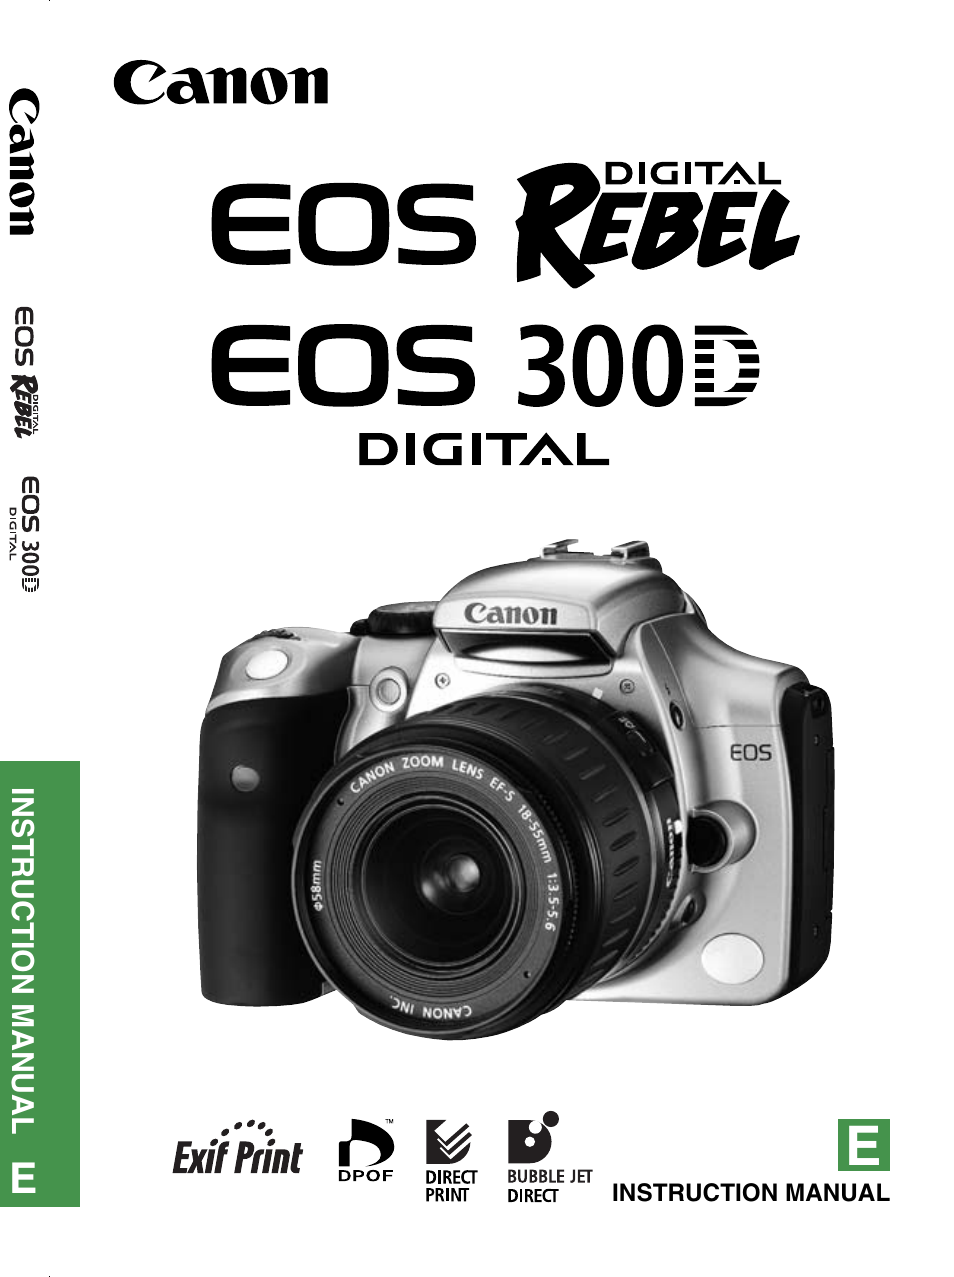 canon ds6041 user manual 140 pages also for eos 300d eos rebel rh manualsdir com Digital DS6041 Rebel Canon No EOS 106424084 Canon DS6041 Kenmore Camera